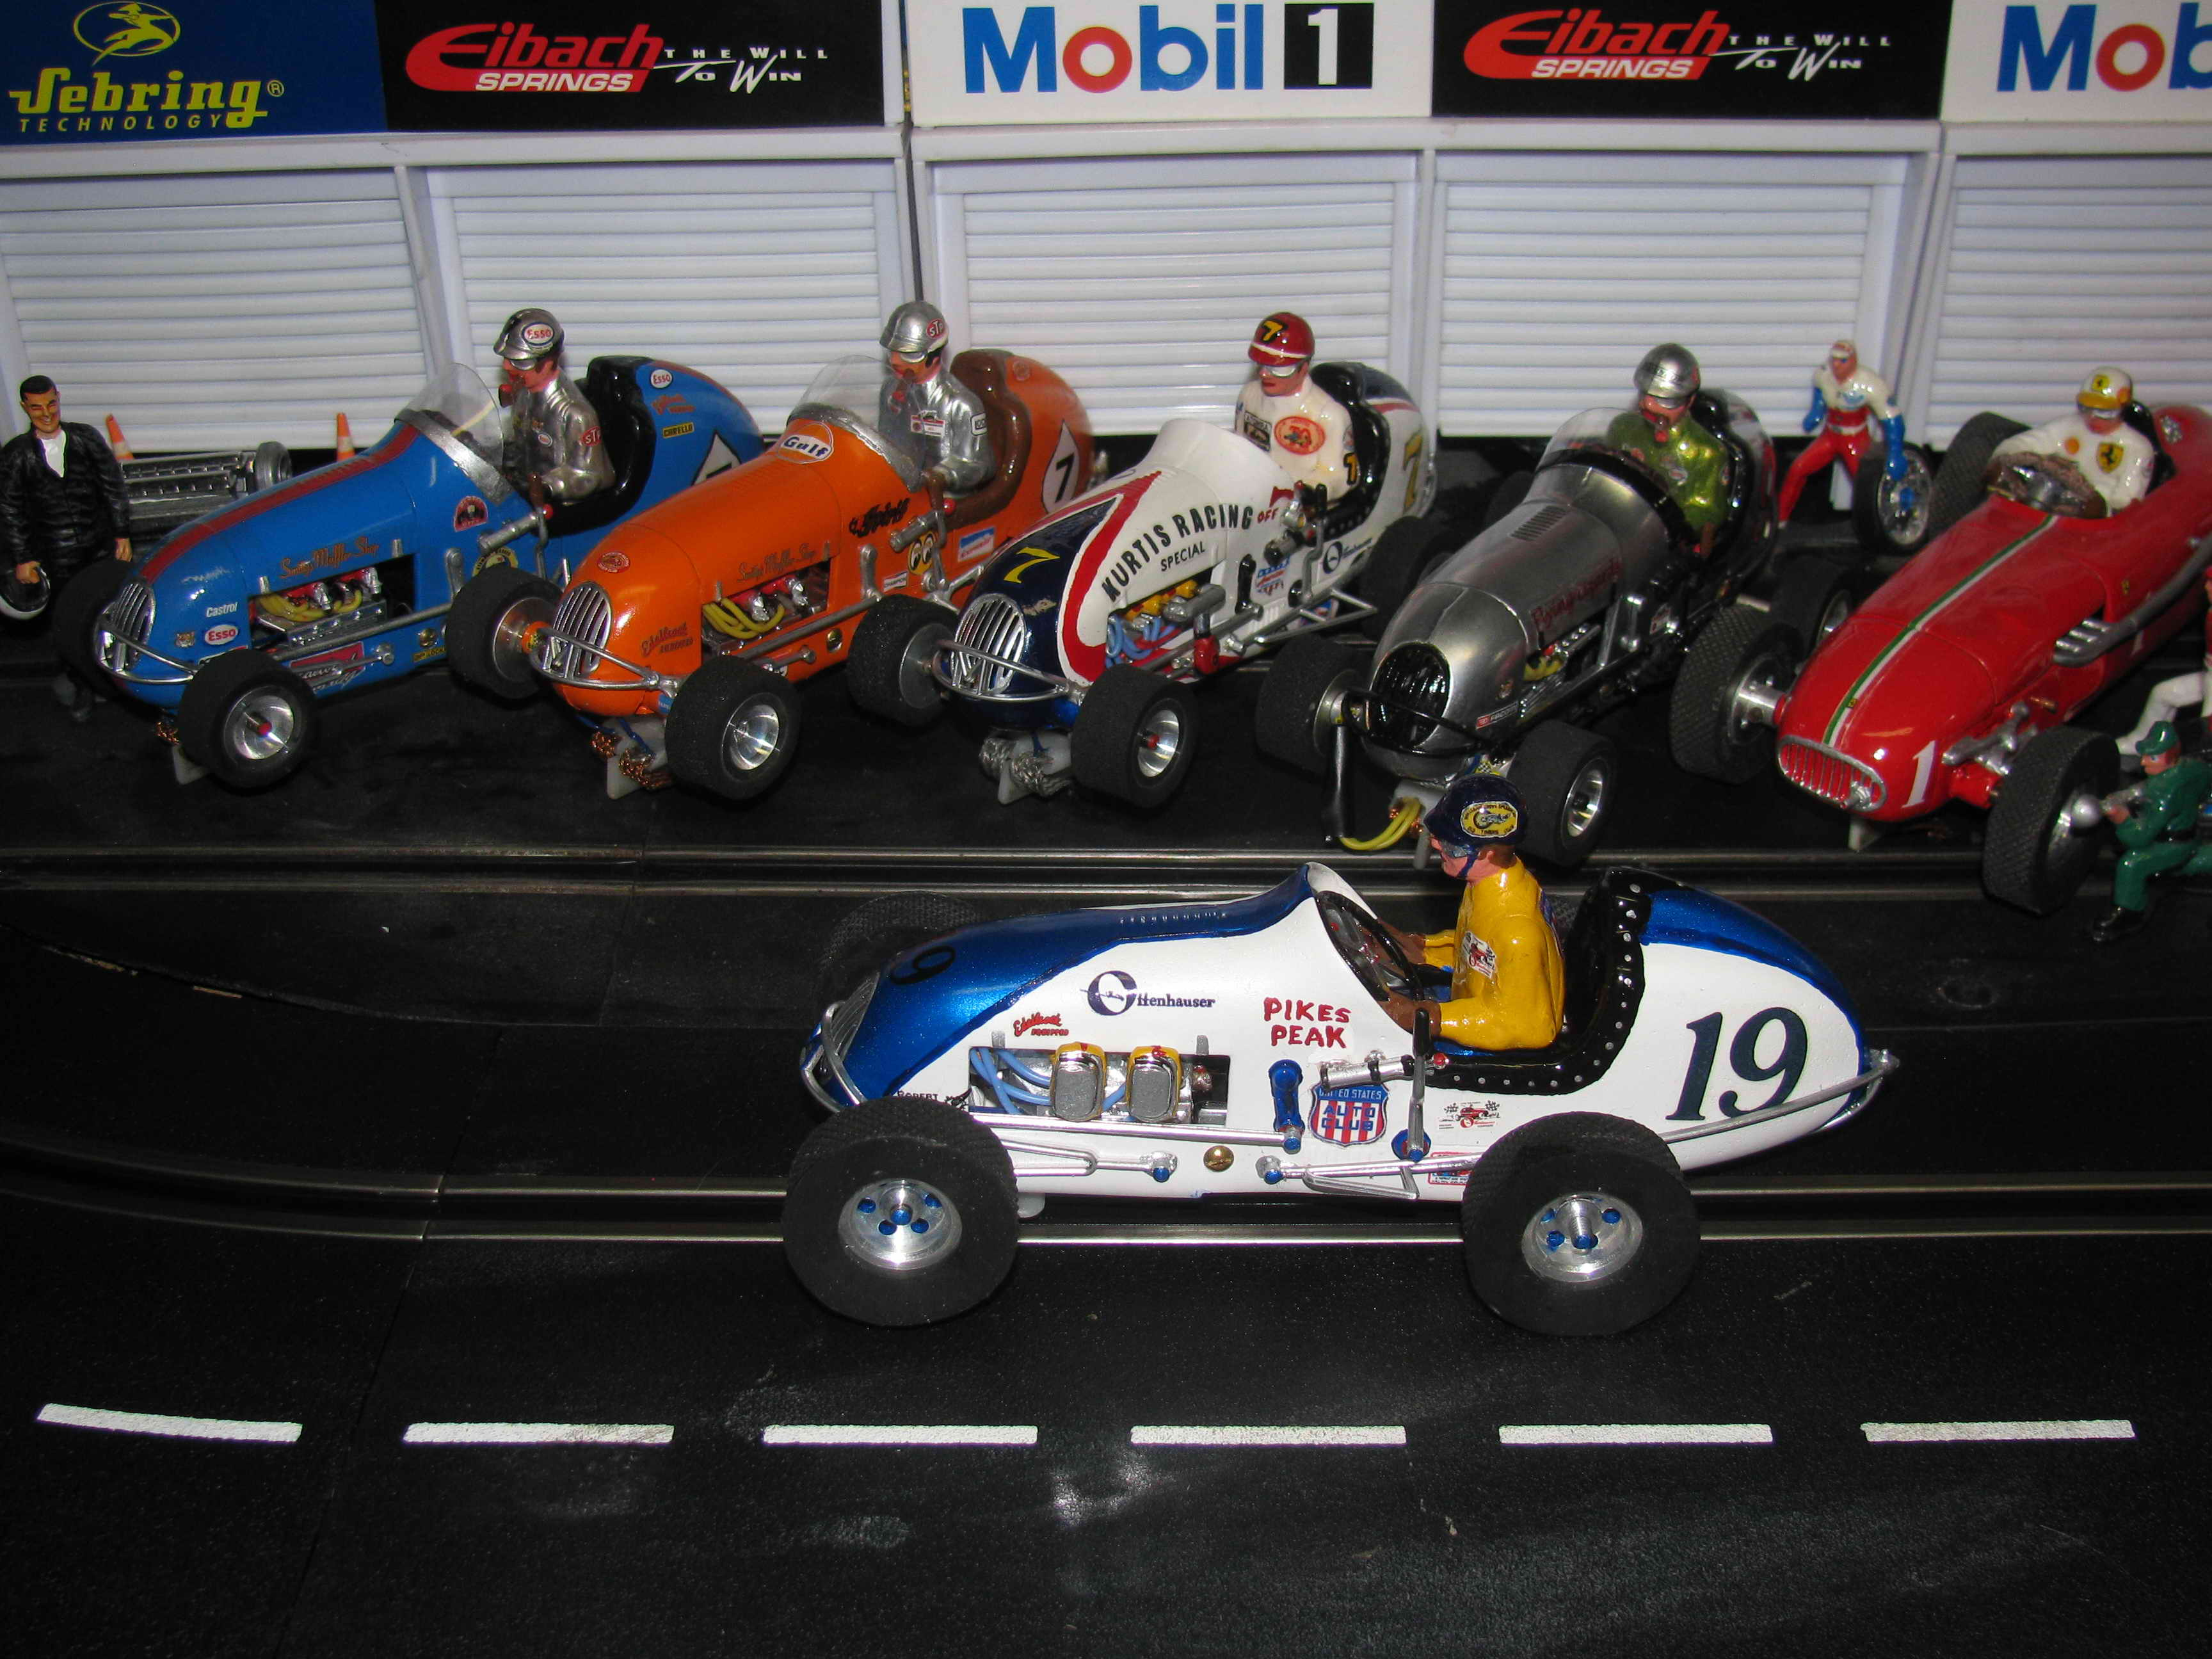 * SOLD * Pikes Peak Midget Racer Kurtis Racing Special – Slot Car #19